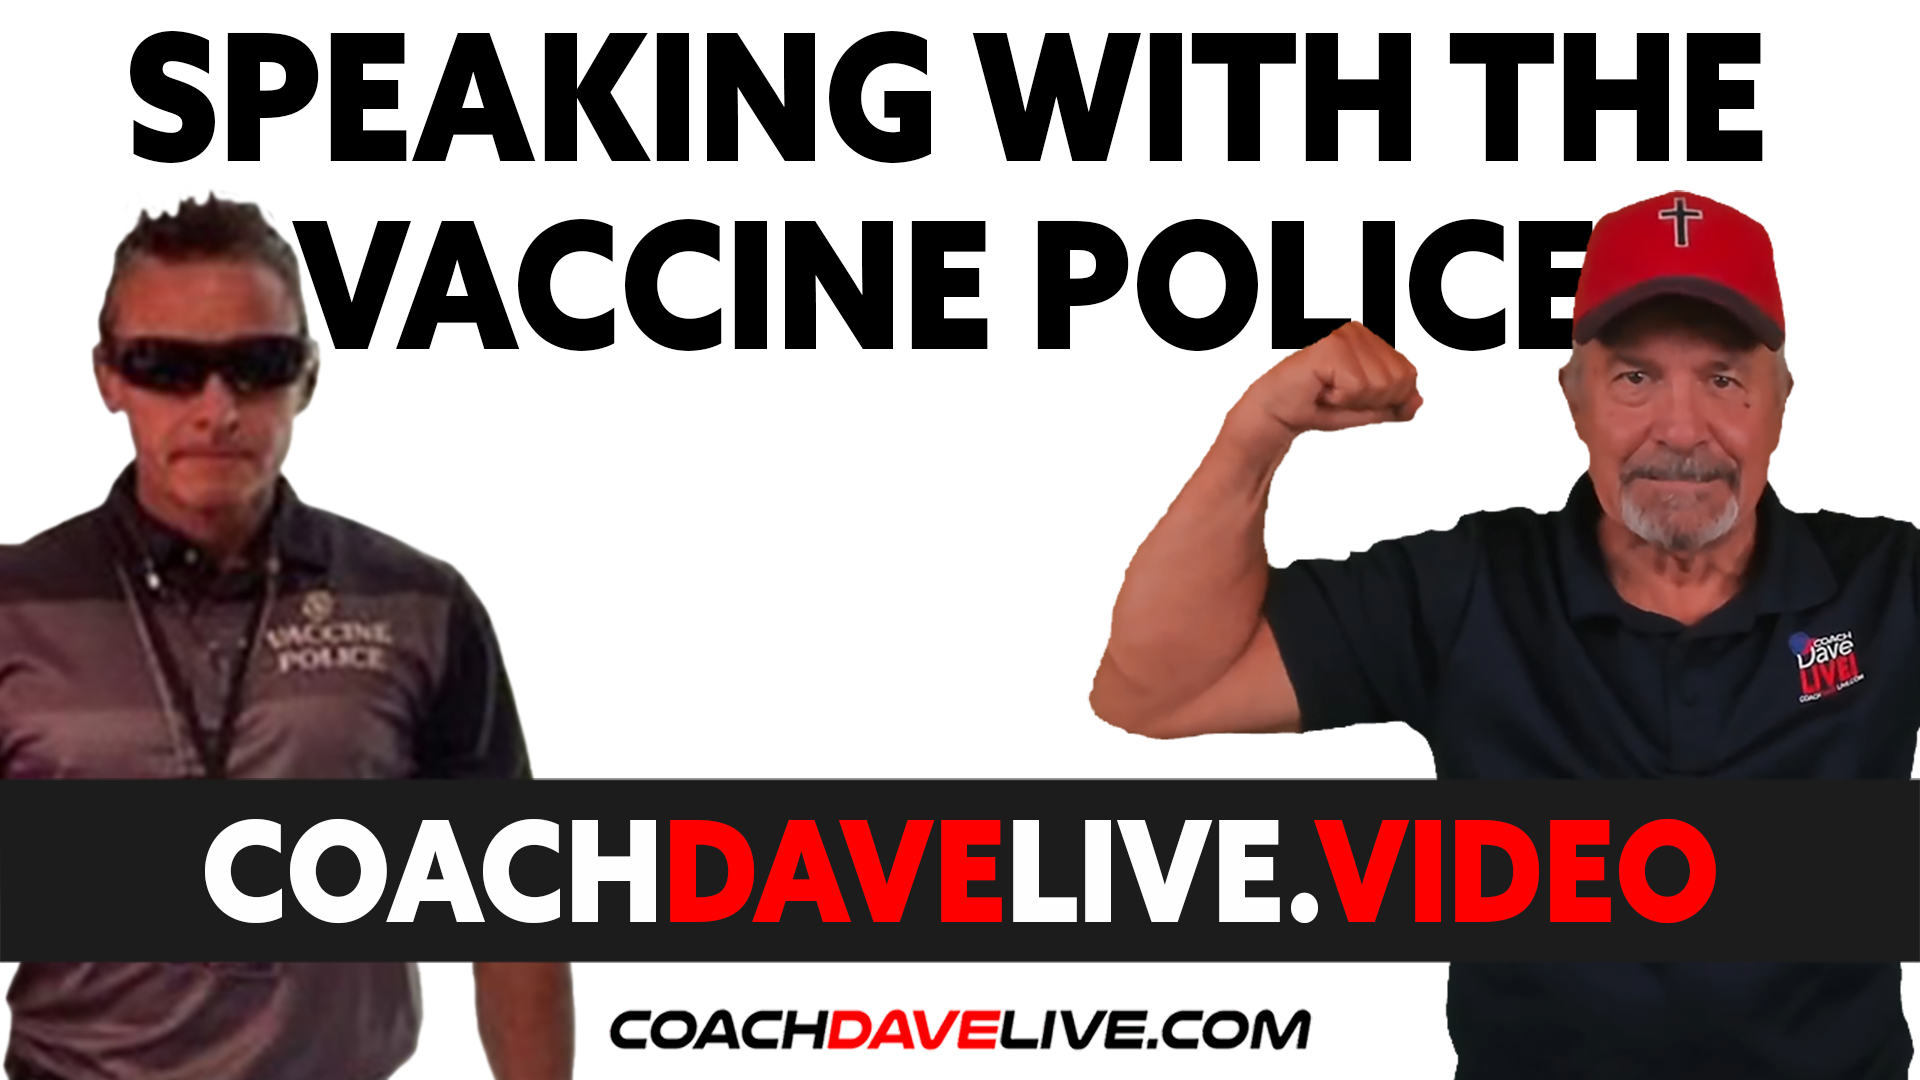 Coach Dave LIVE | 8-26-2021 | SPEAKING WITH THE VACCINE POLICE!